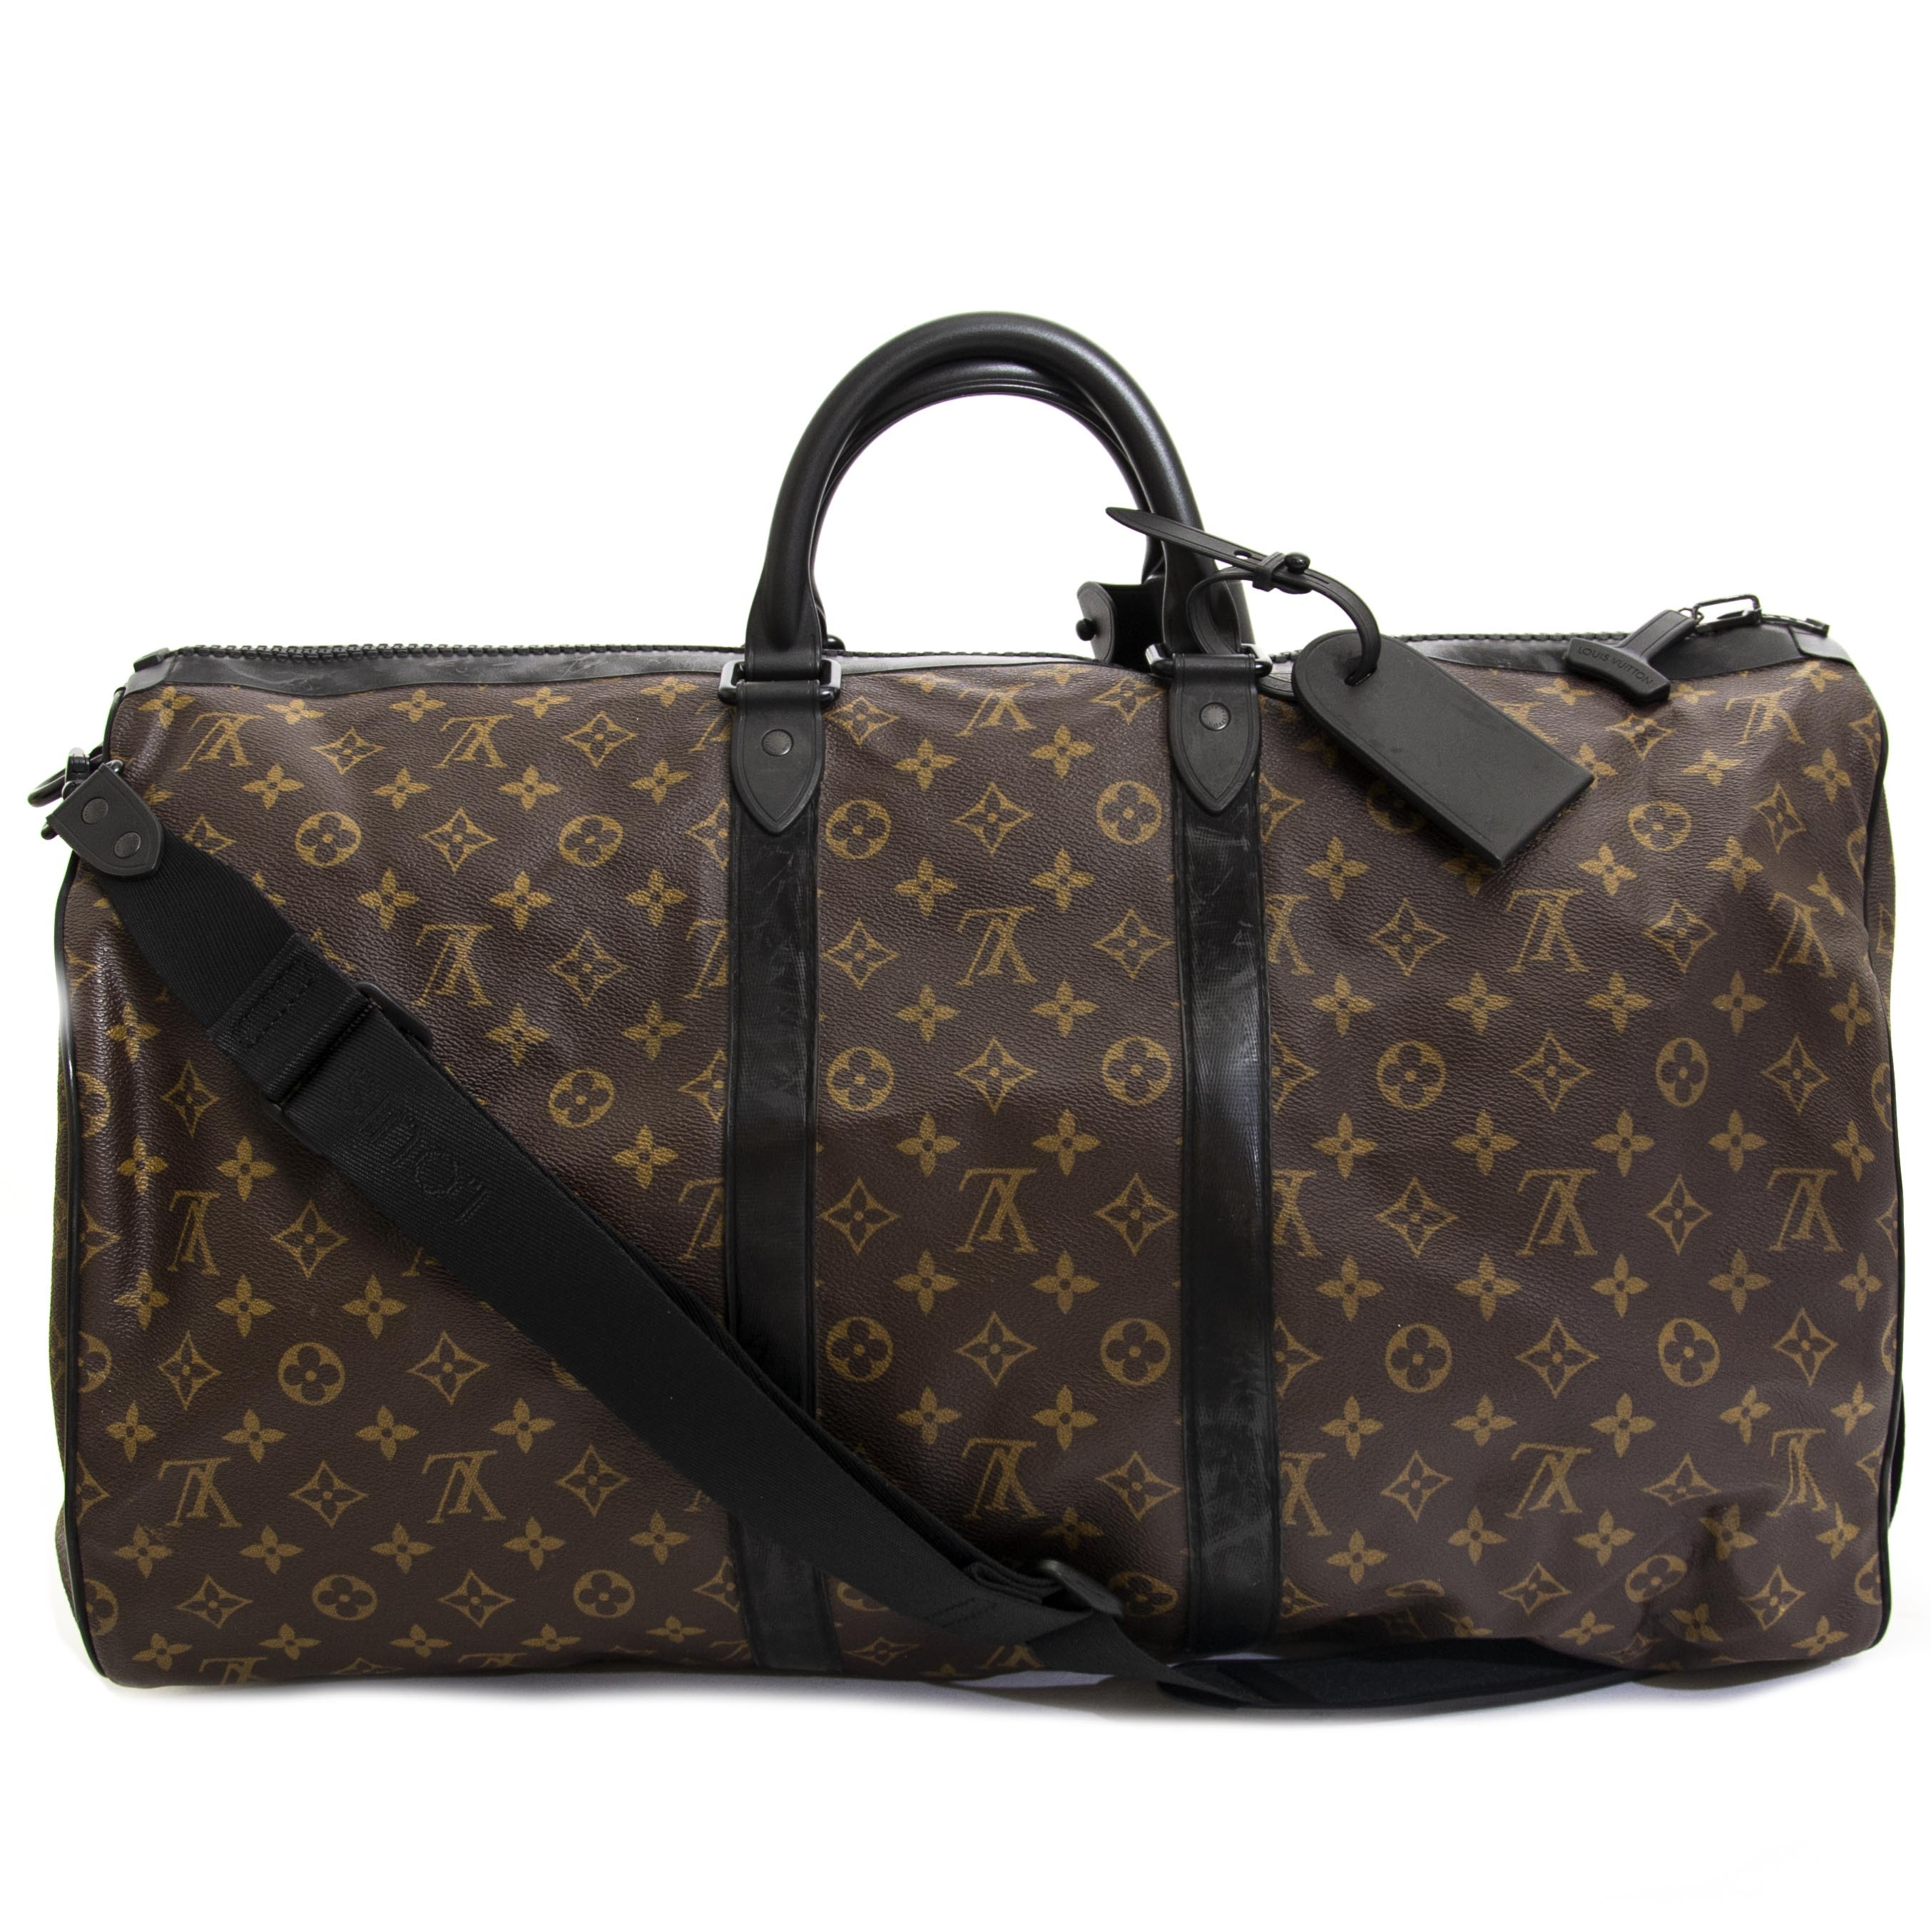 ... Louis Vuitton Waterproof KeepAll 55 Bandoulière now for sale at  labellov vintage fashion webshop belgium 59dff0ded38ea